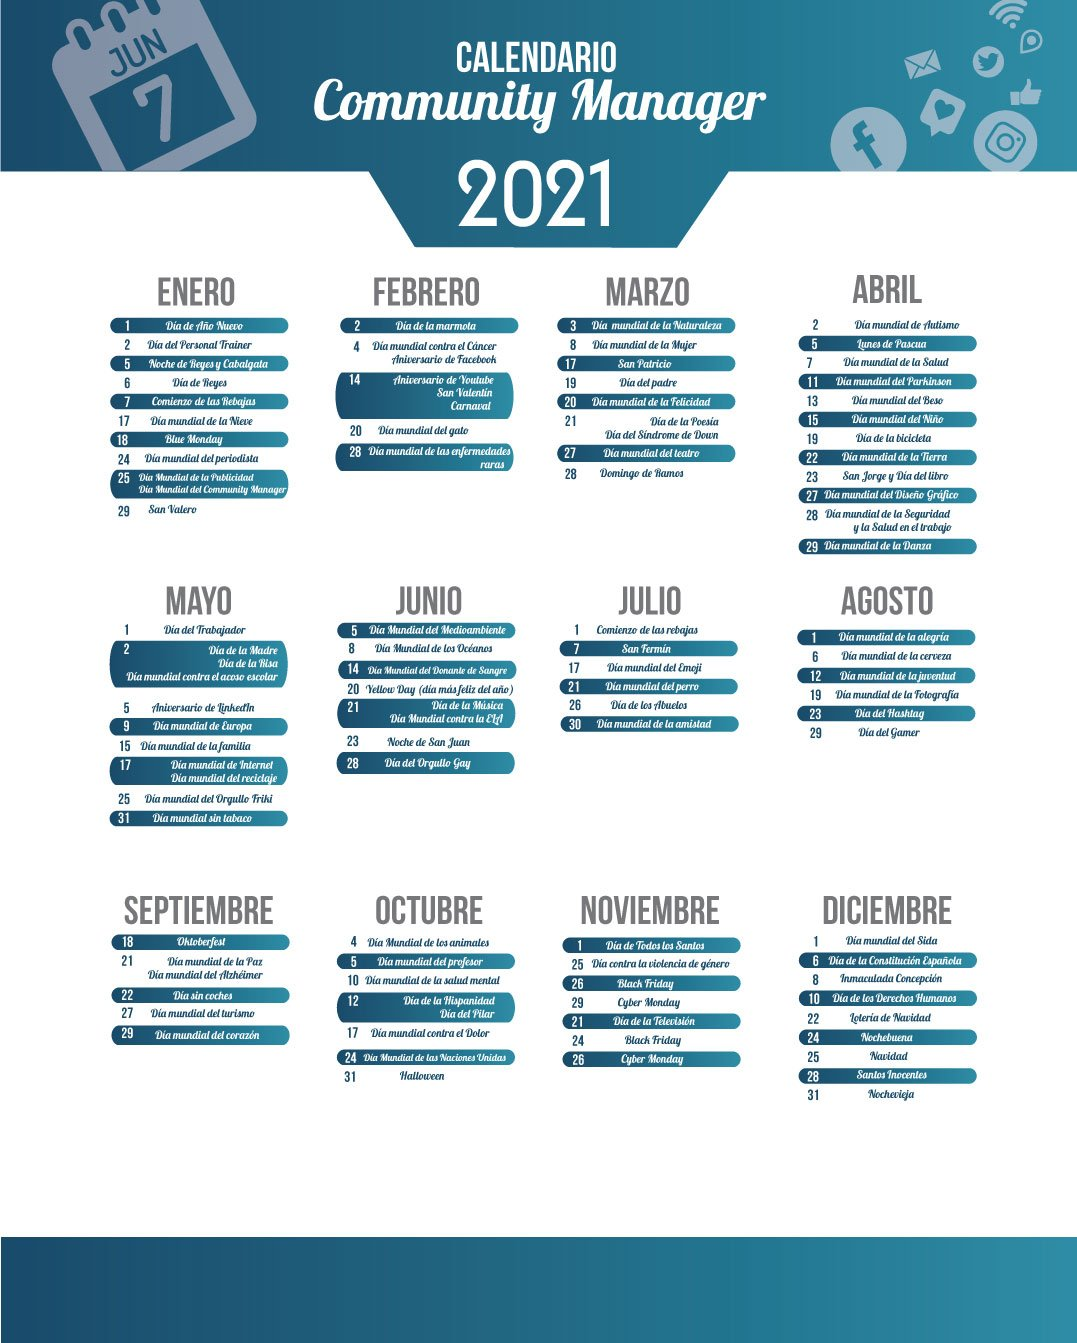 Calendario Community Manager 2021   QTZ Marketing